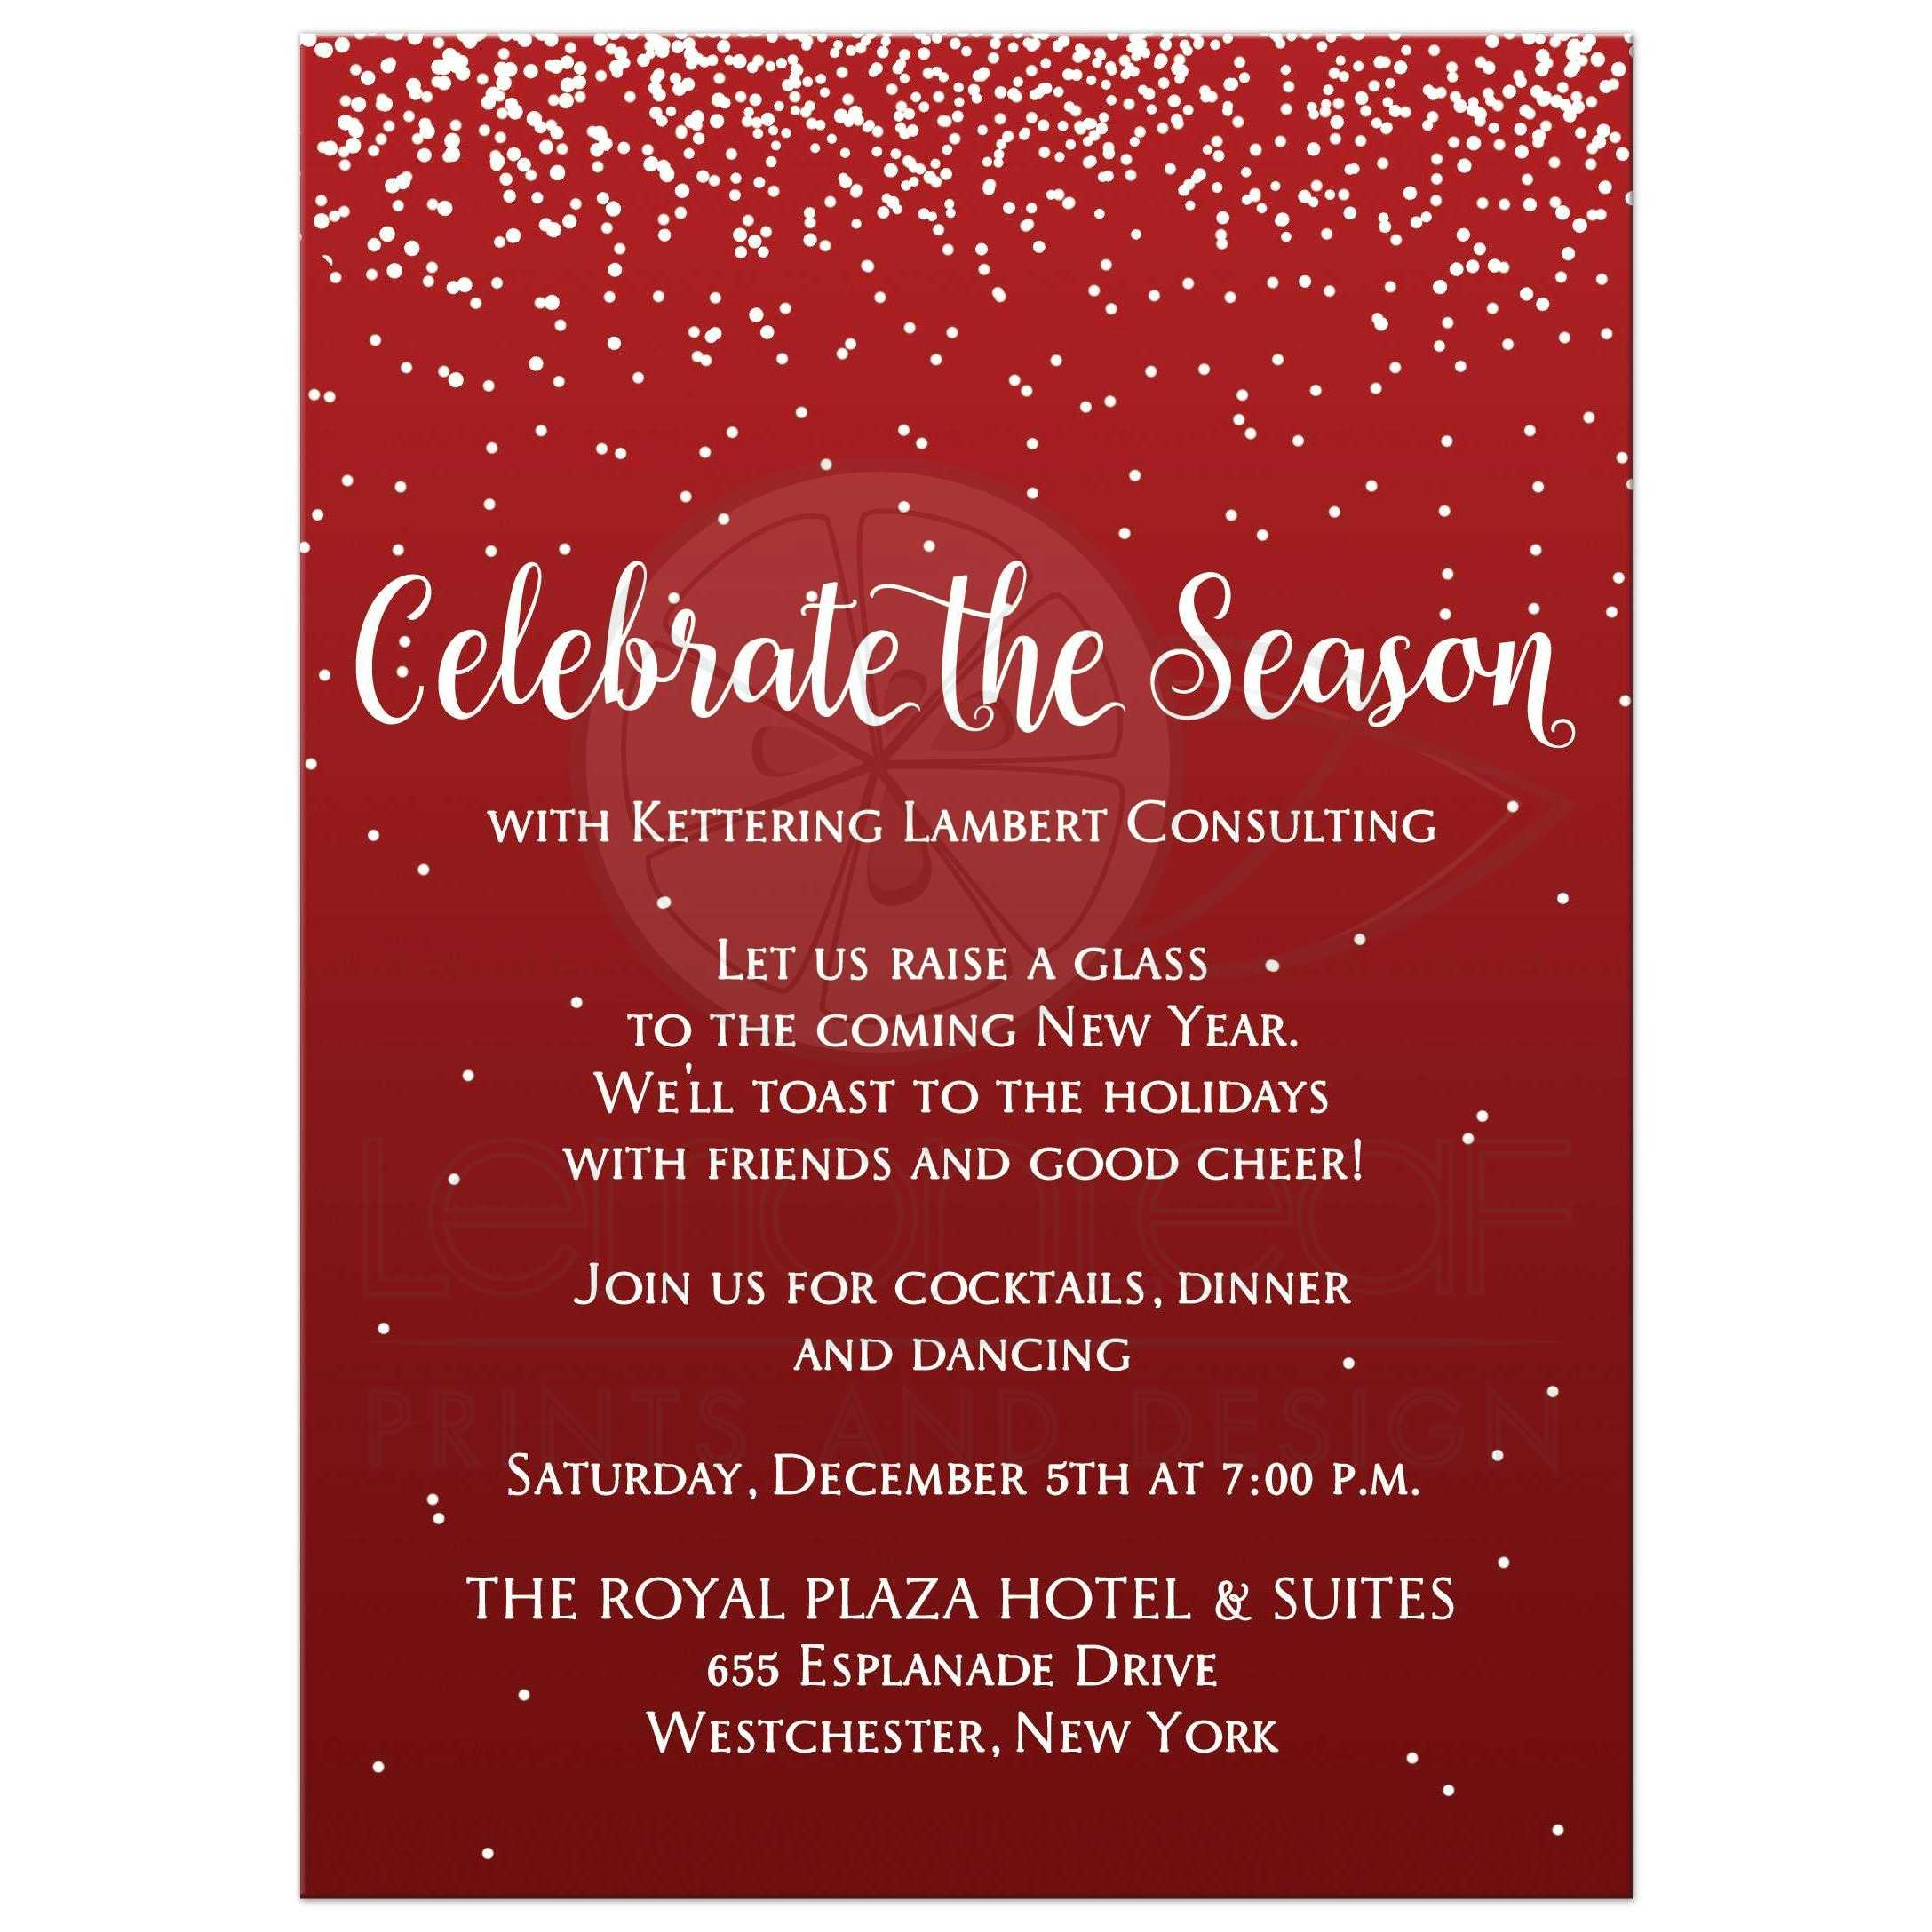 best red and white falling snow corporate or company holiday or christmas party invitation with